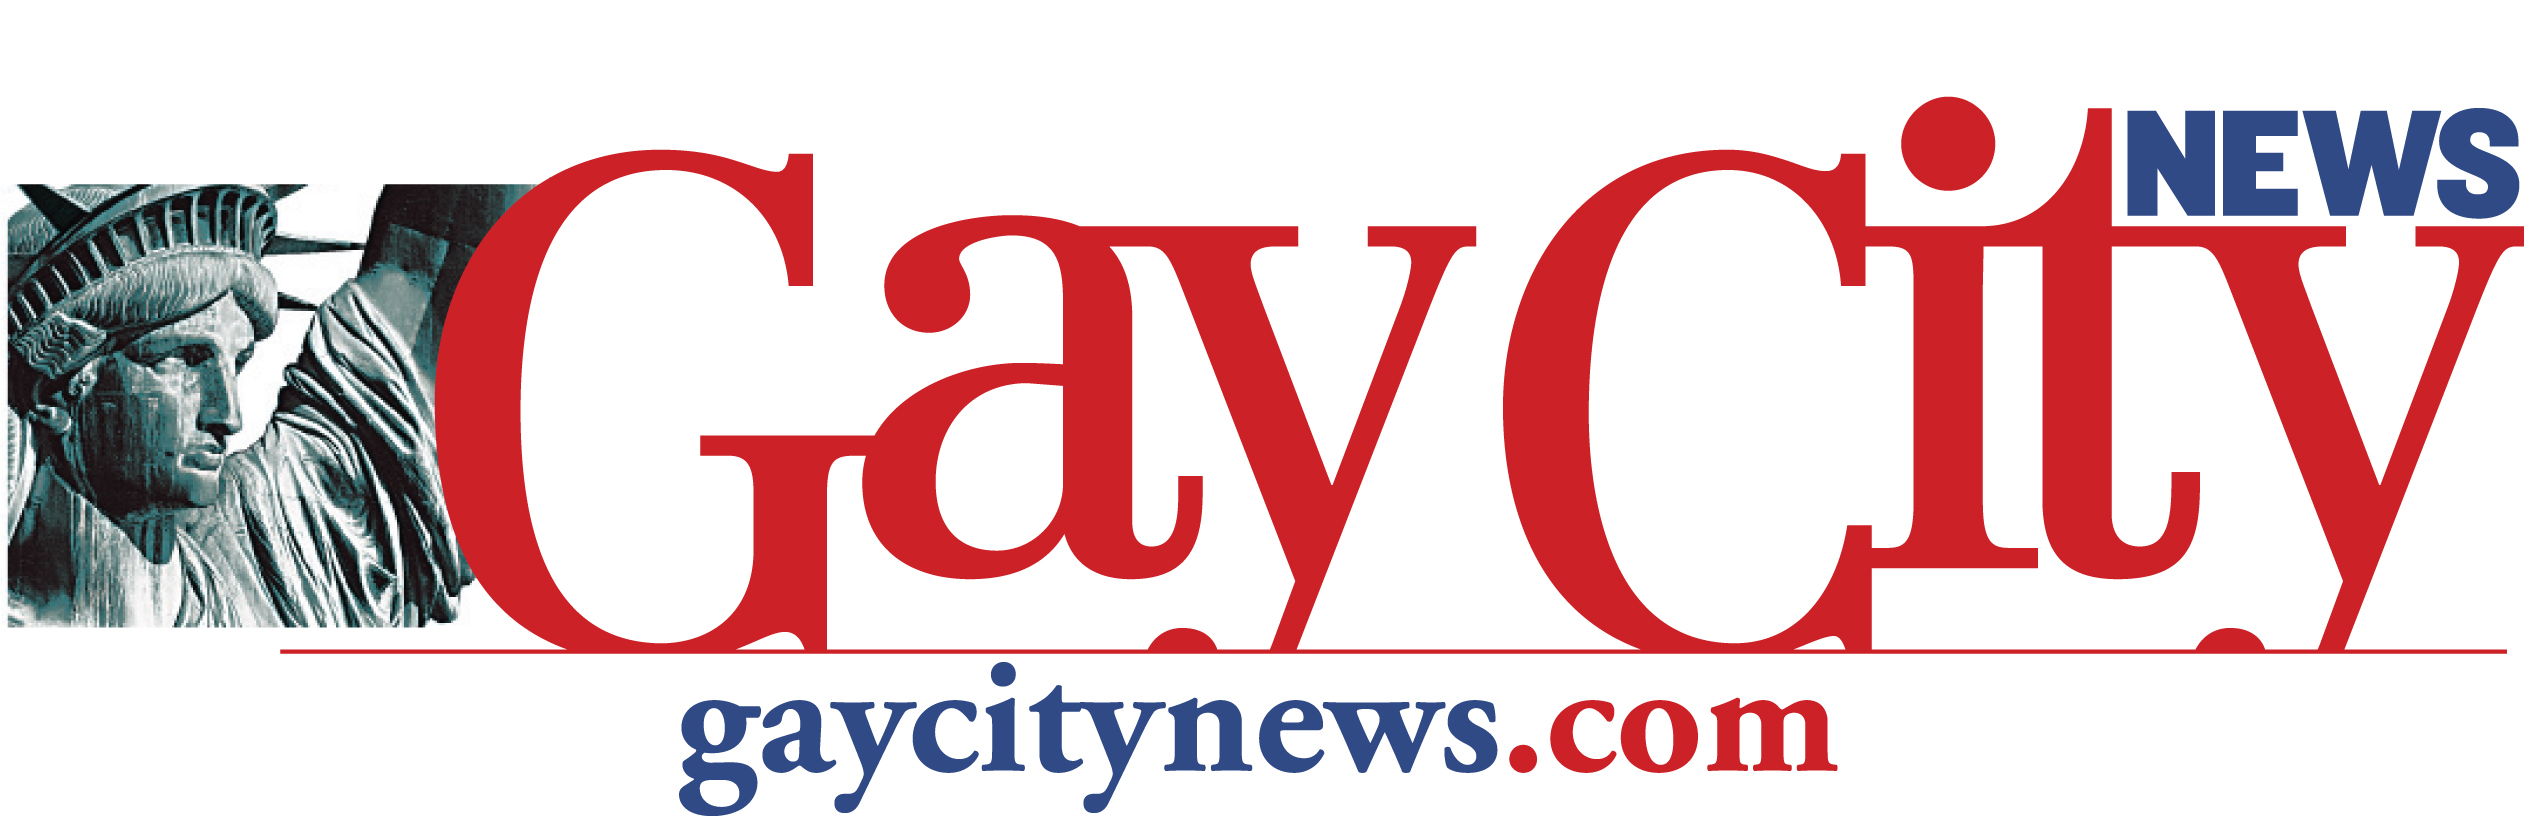 Gay City News logo